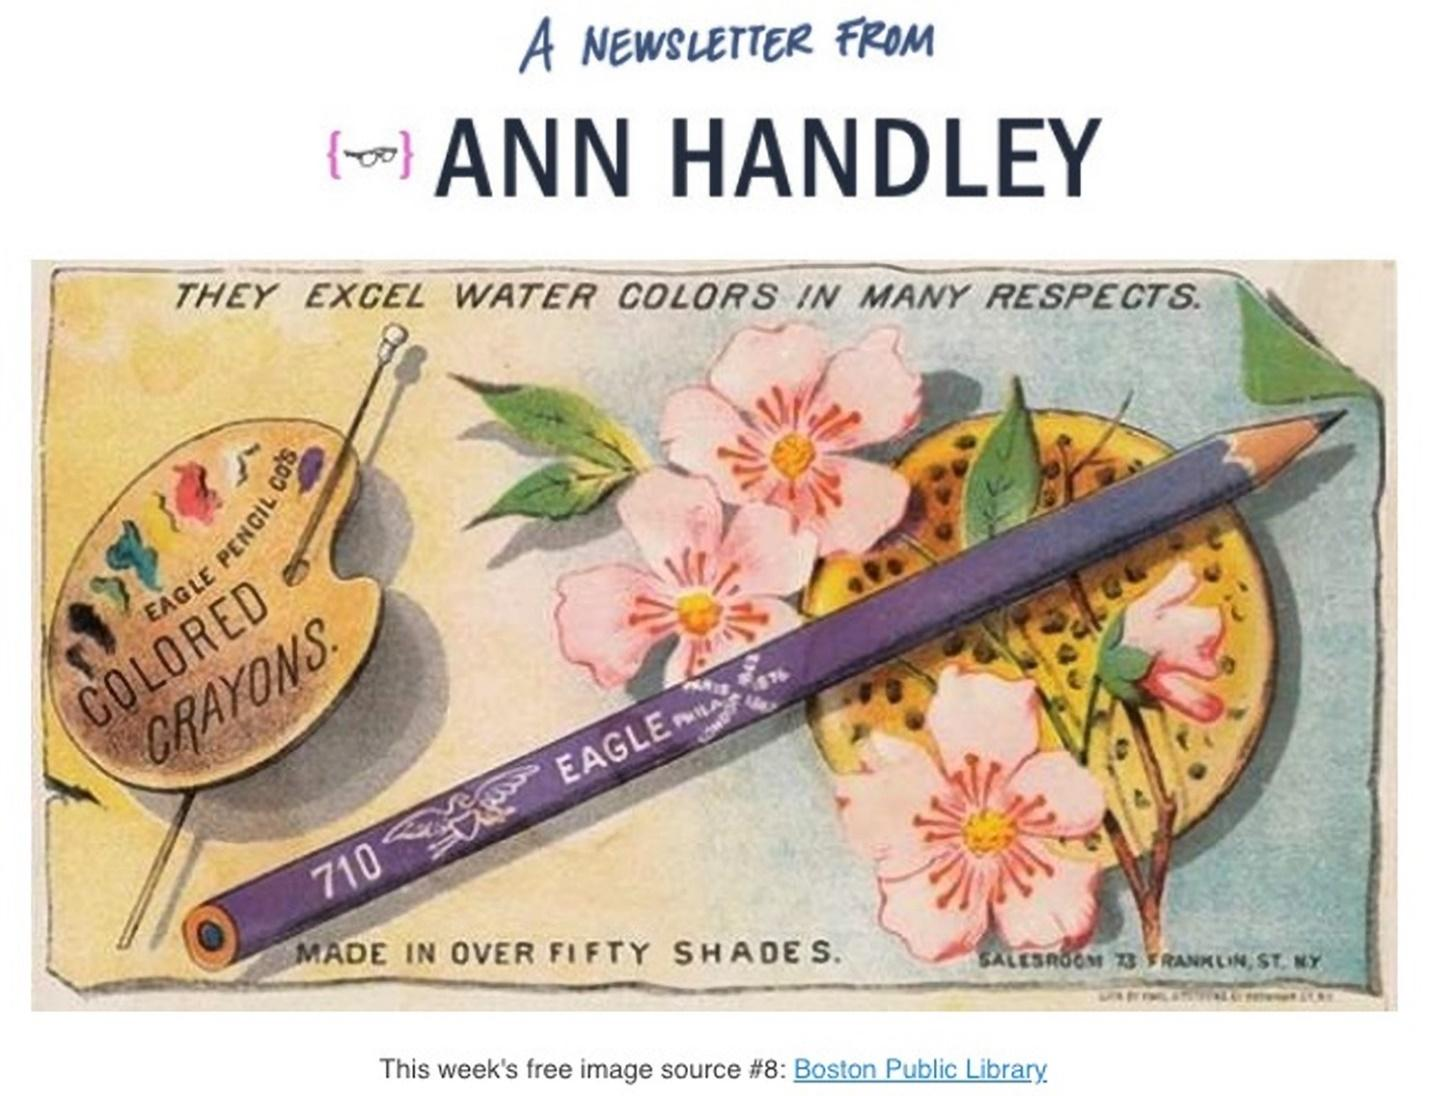 newsletter from Ann Handley